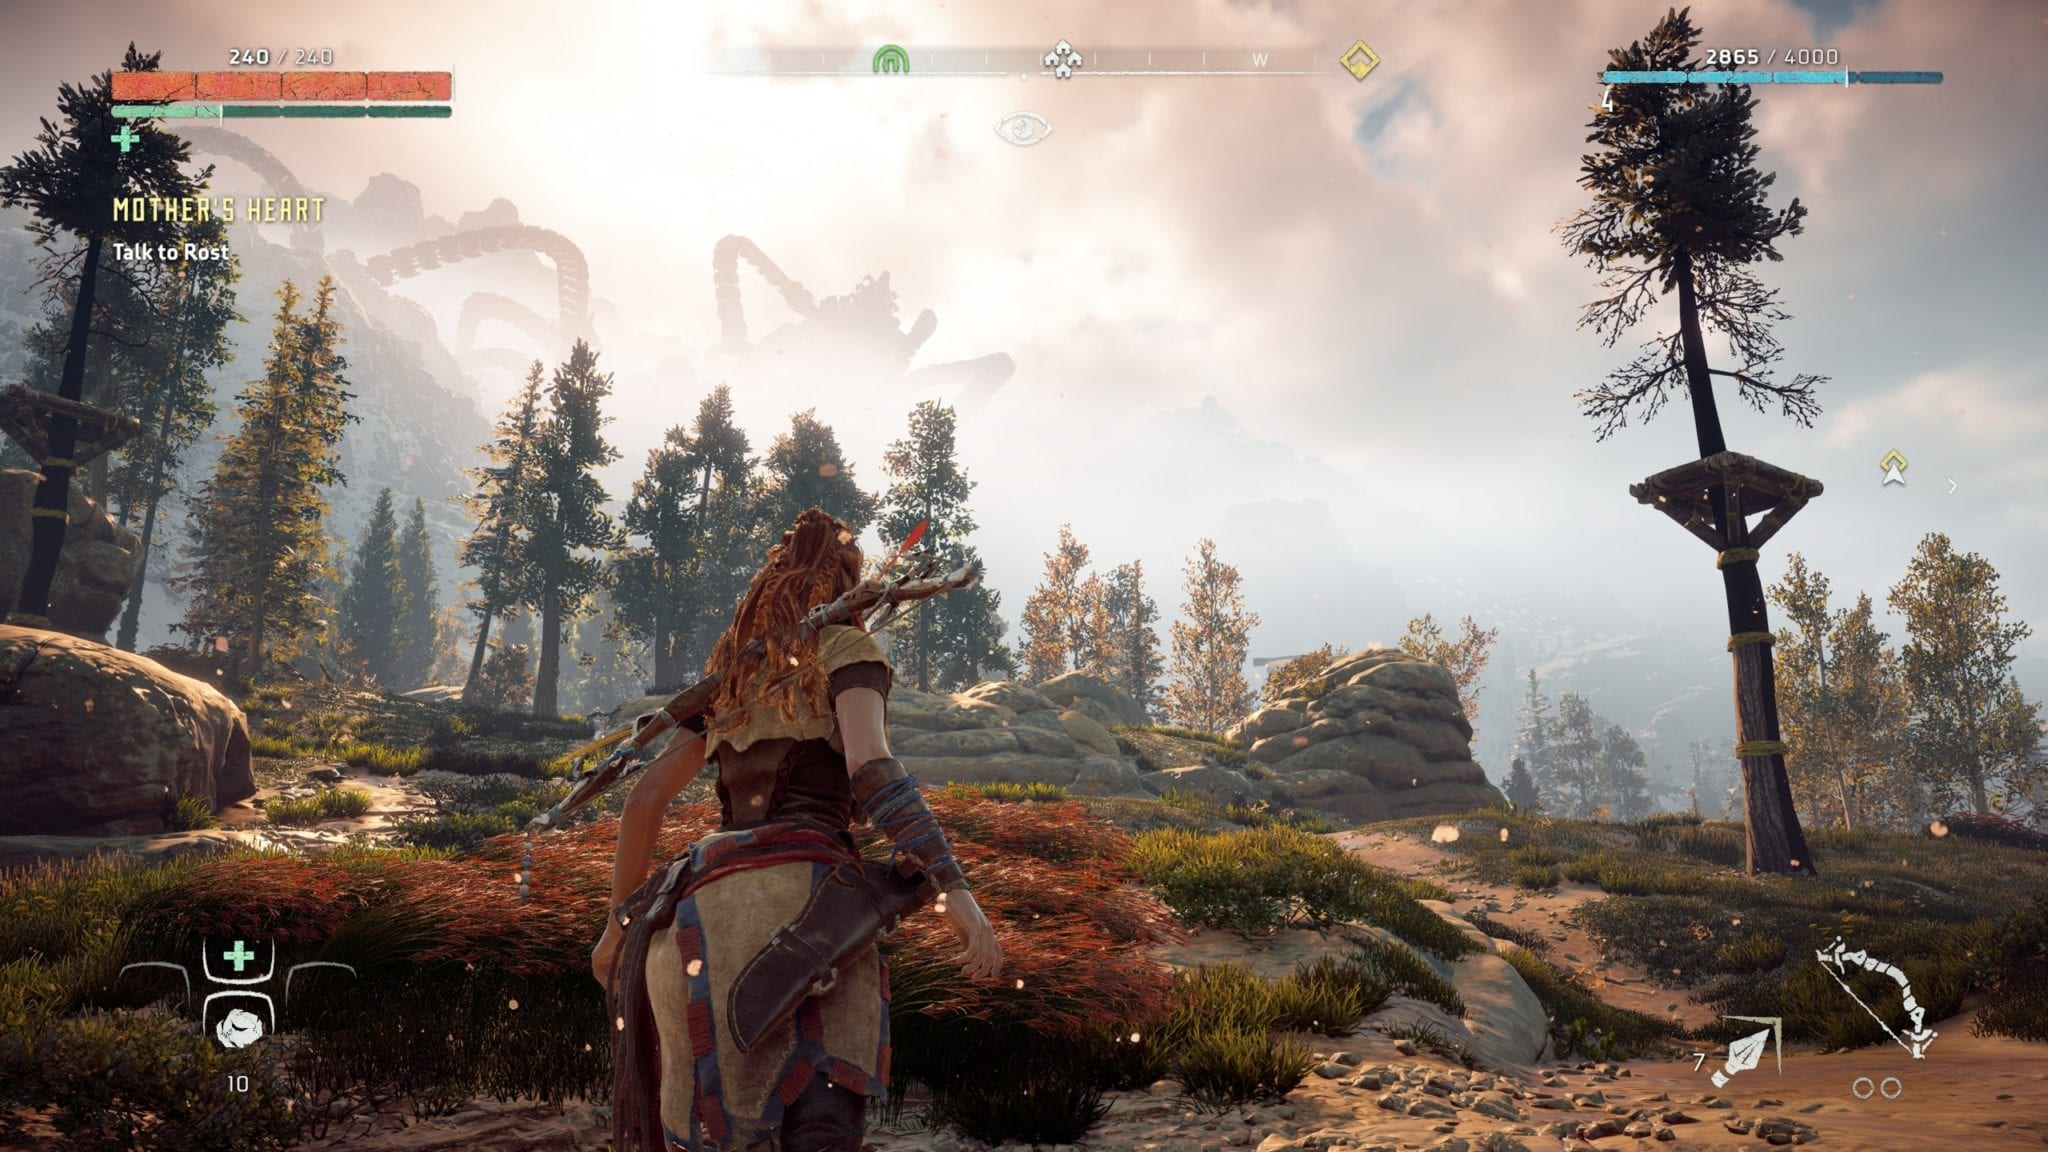 Horizon Zero Dawn PC 1440p Optimized